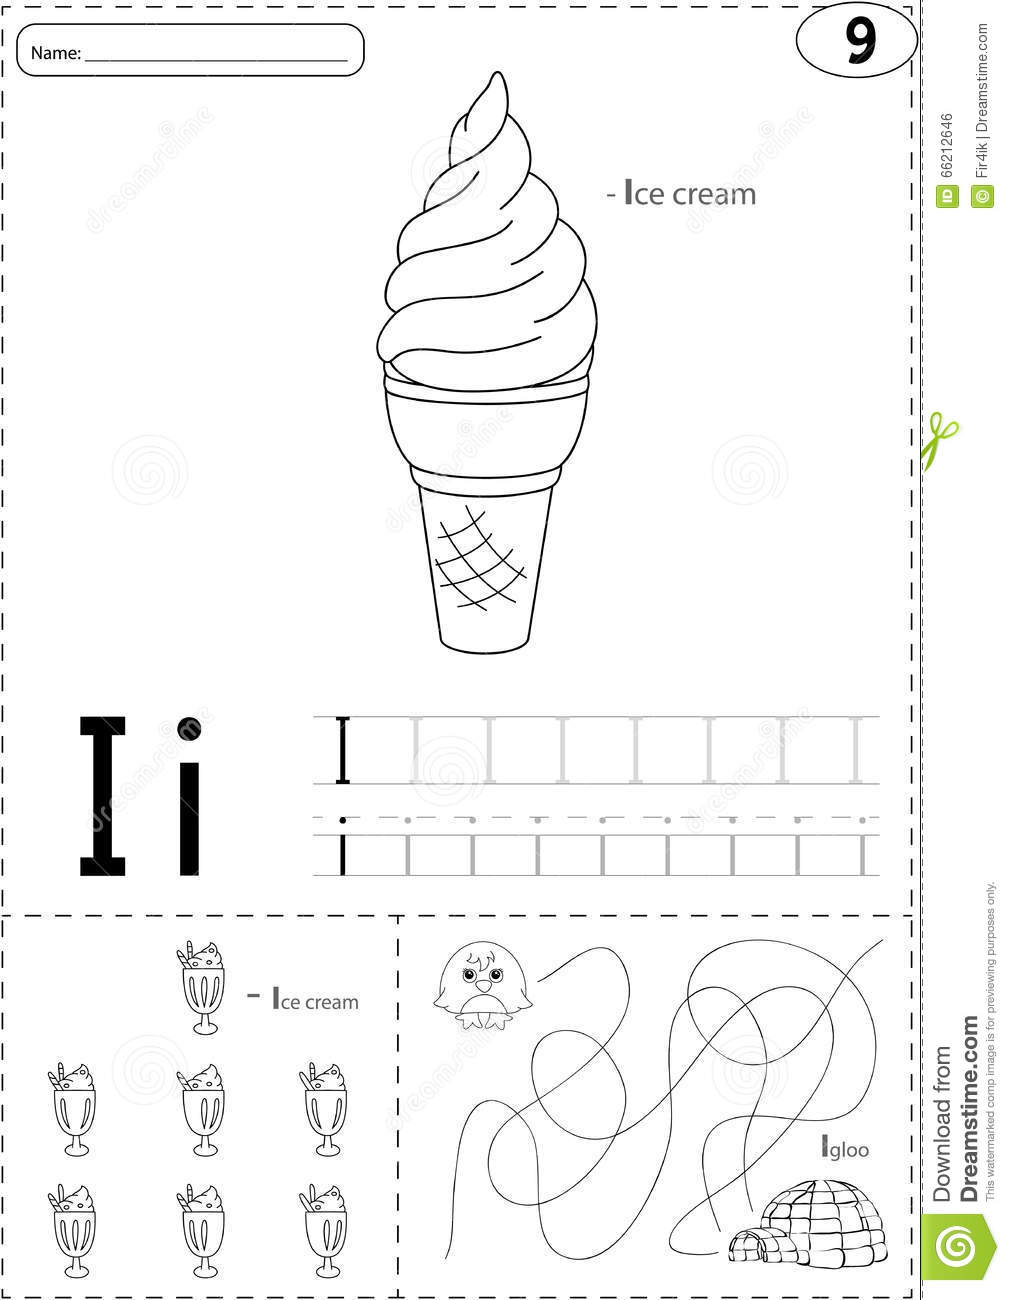 Cartoon Ice Cream And Igloo. Alphabet Tracing Worksheet